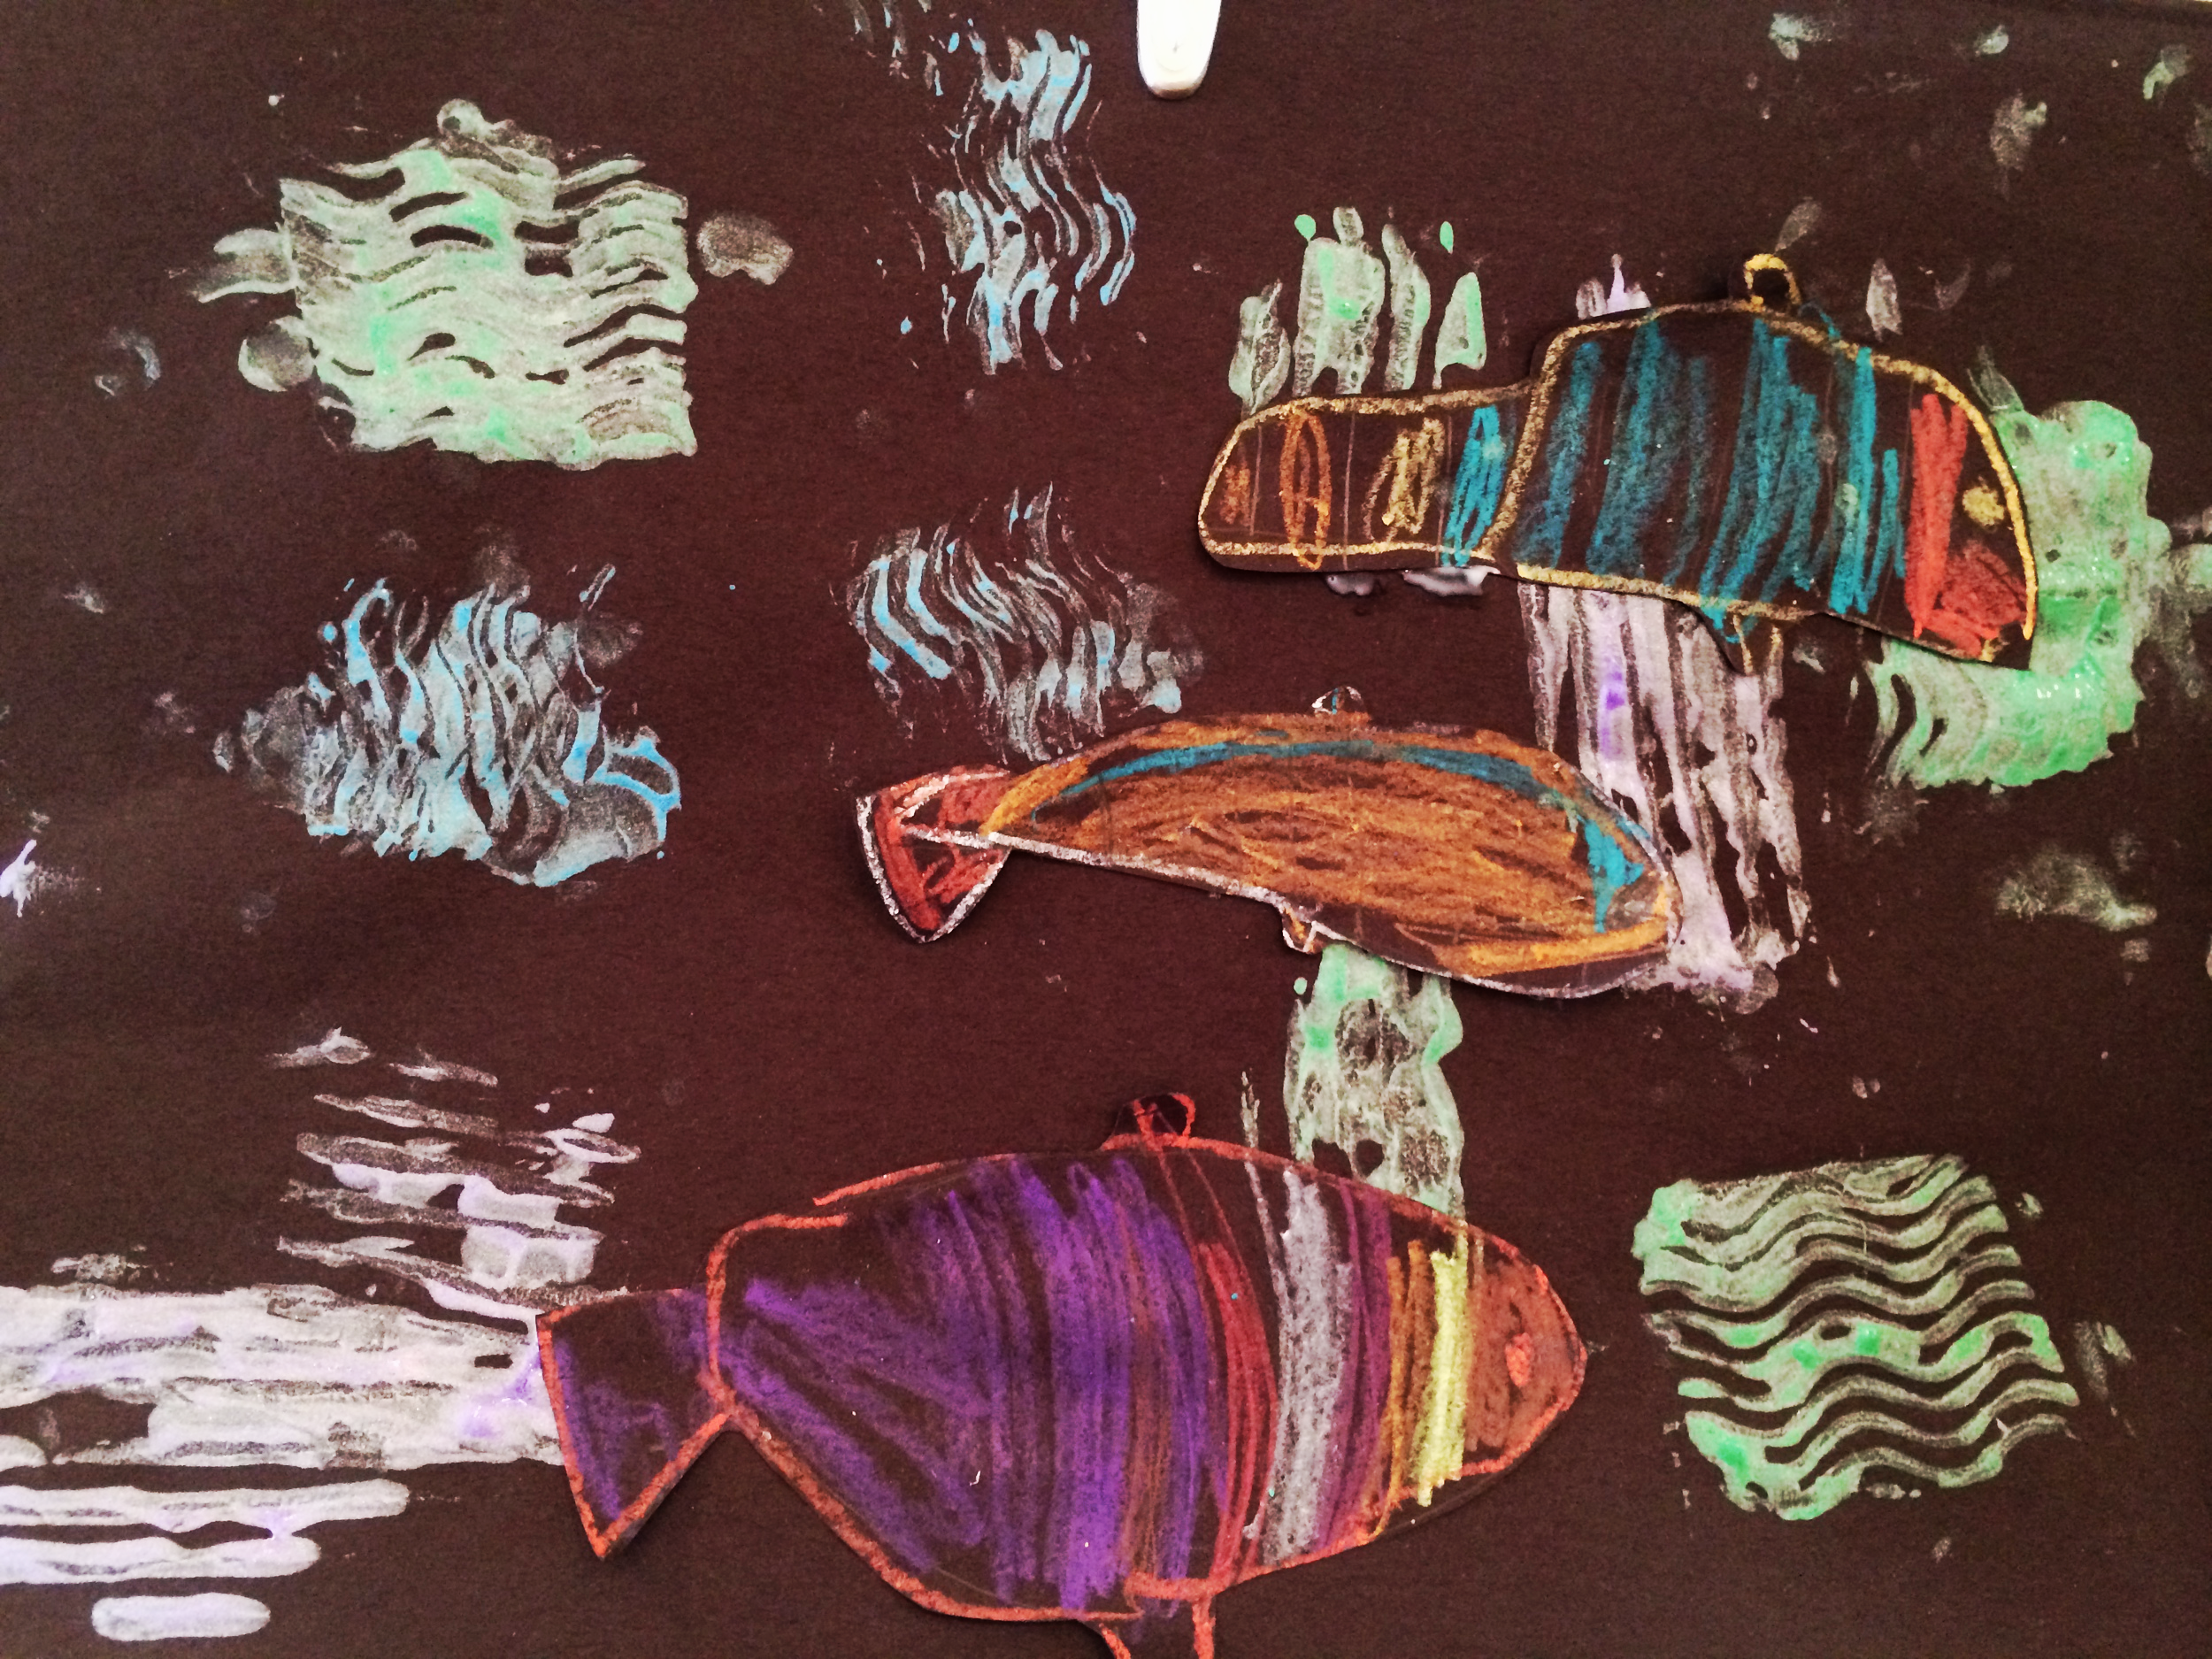 Paul Klee school of fish.